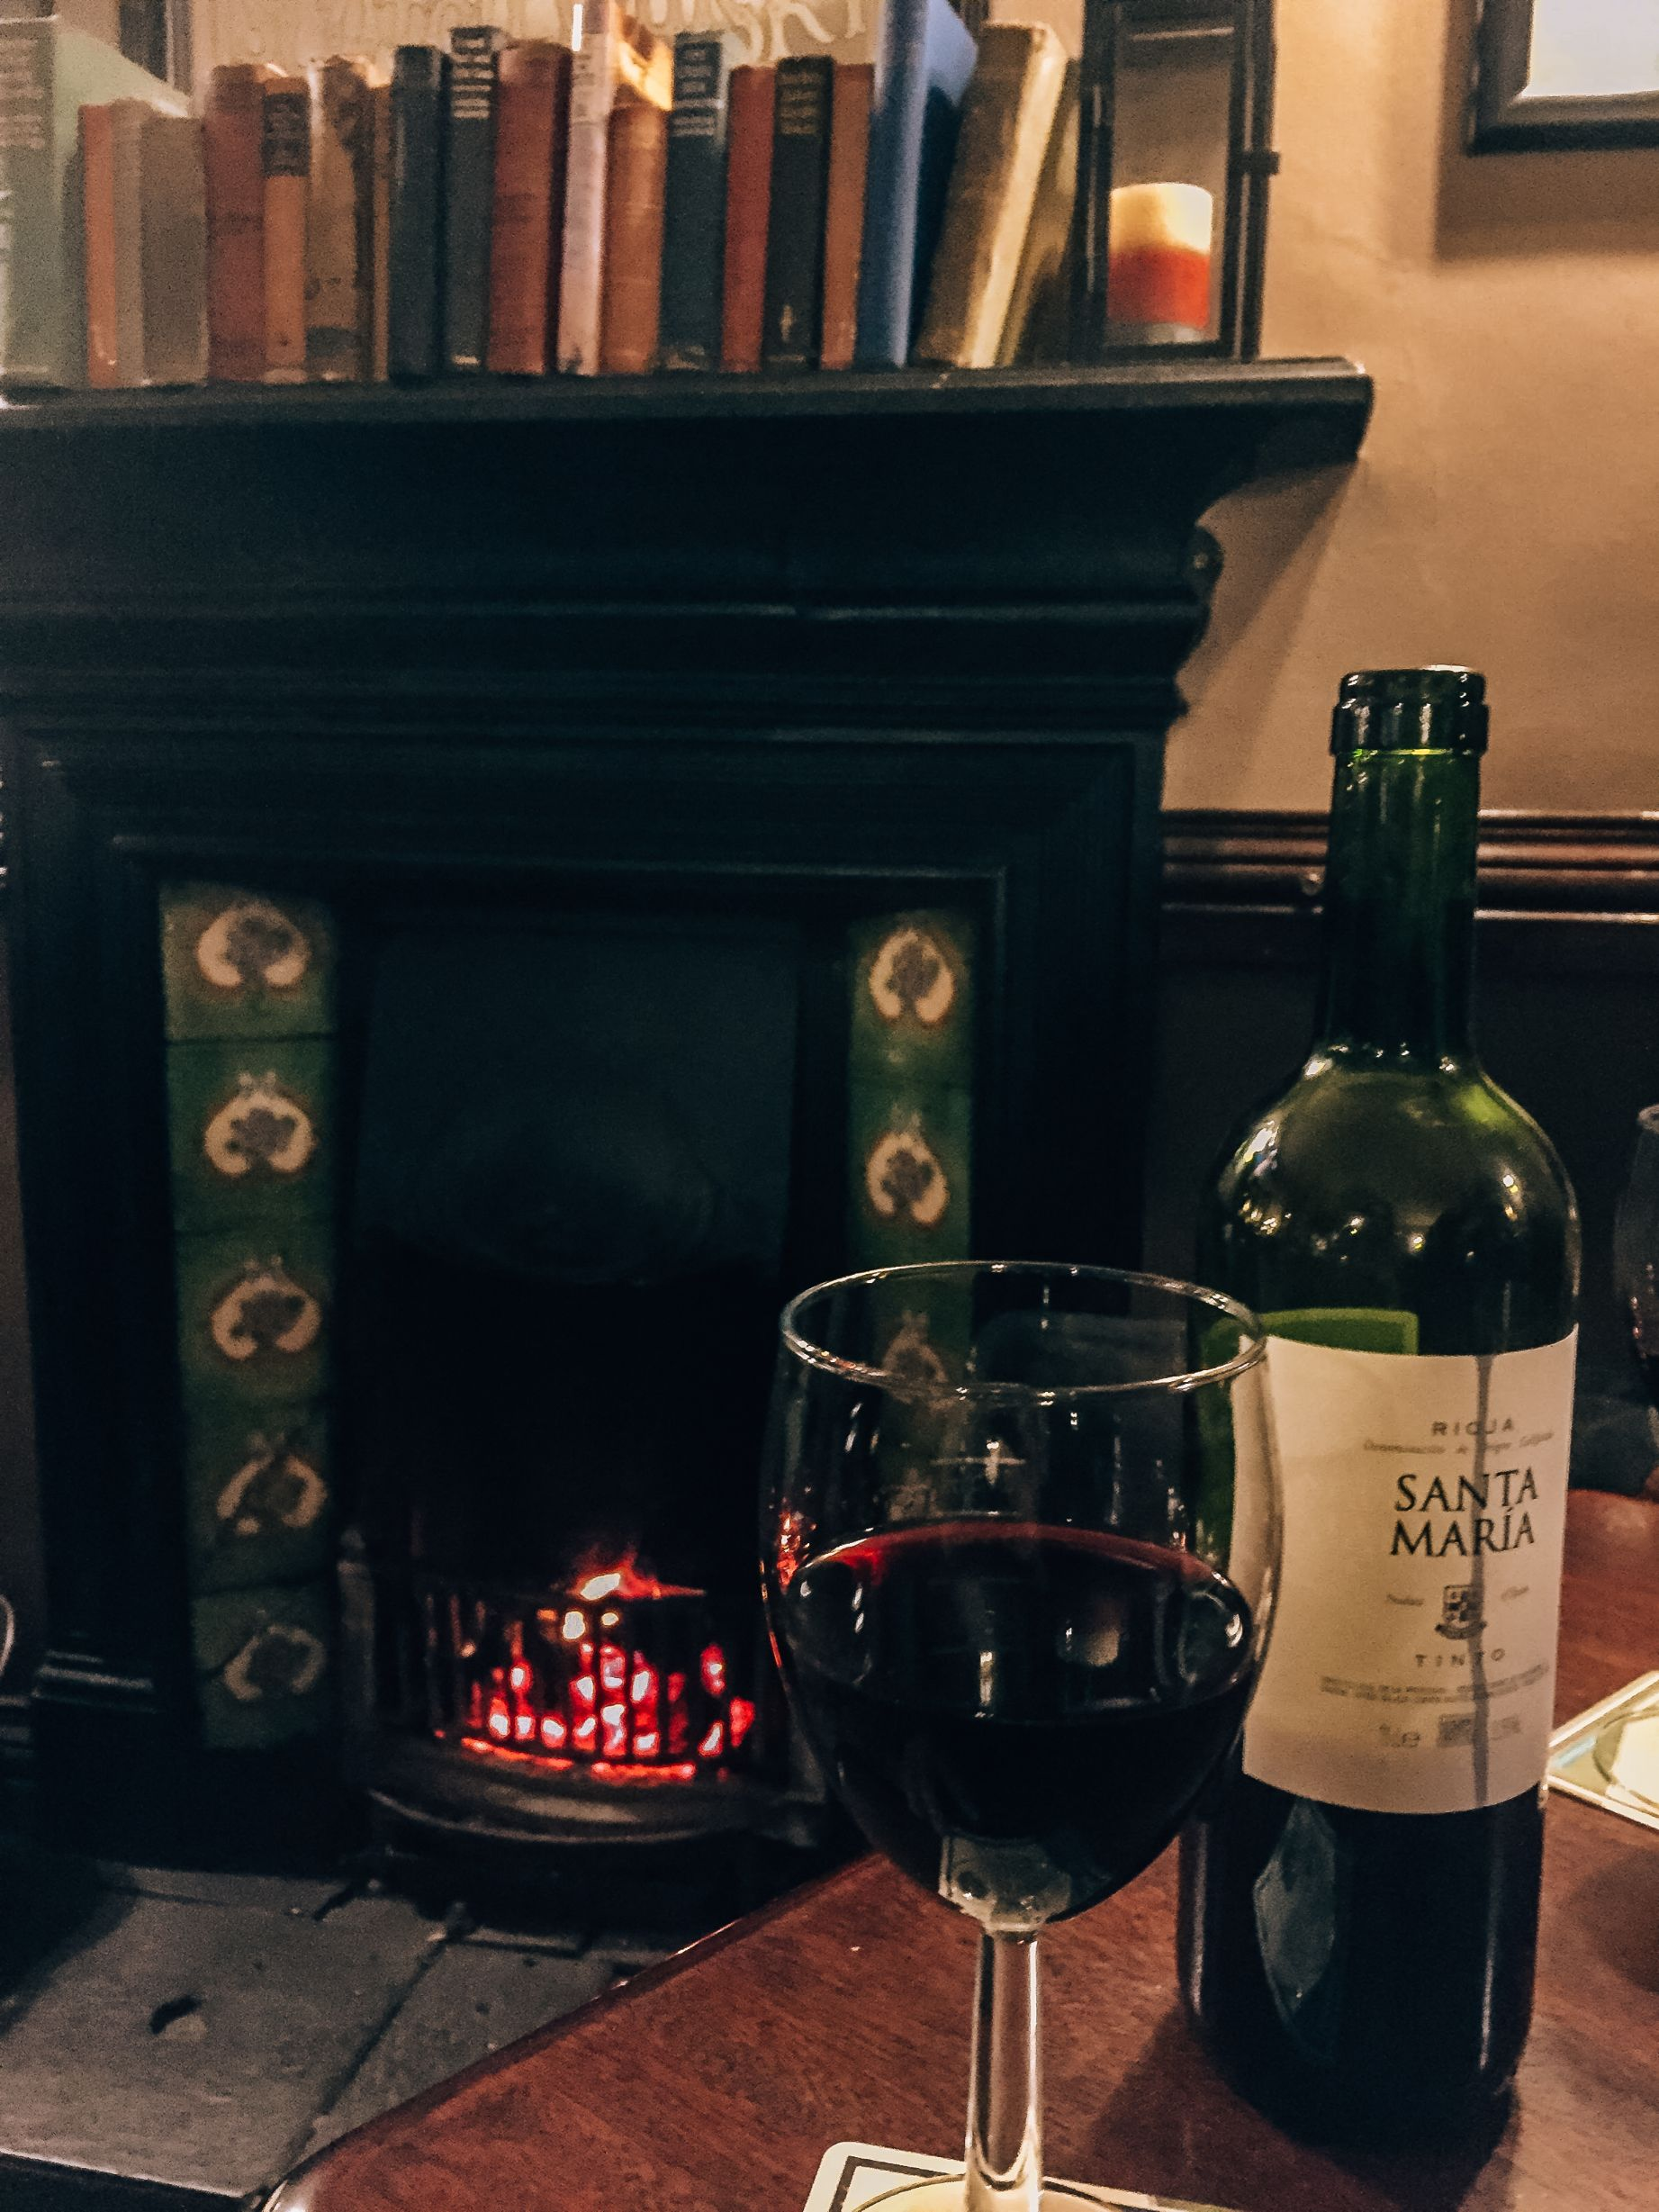 glass of wine on table next to wine bottle in front of historic fireplace in Kilrush, Ireland